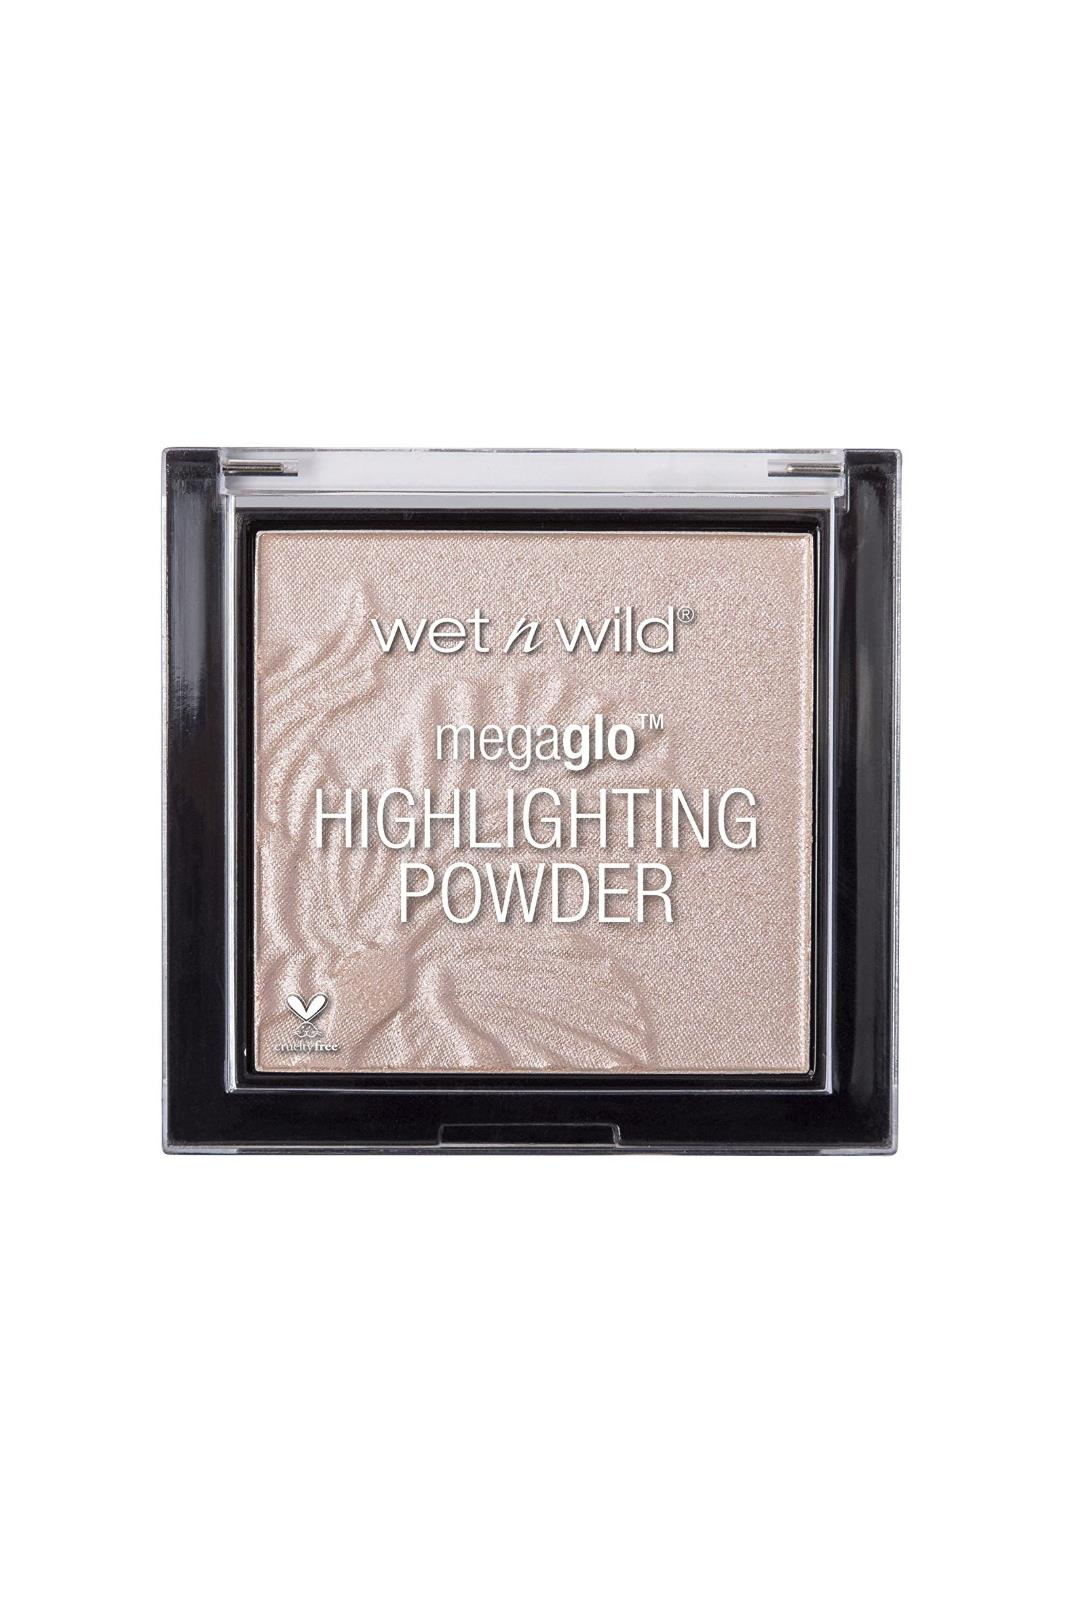 MegaGlo Highlighting Powder Wet n Wild, 5,99€